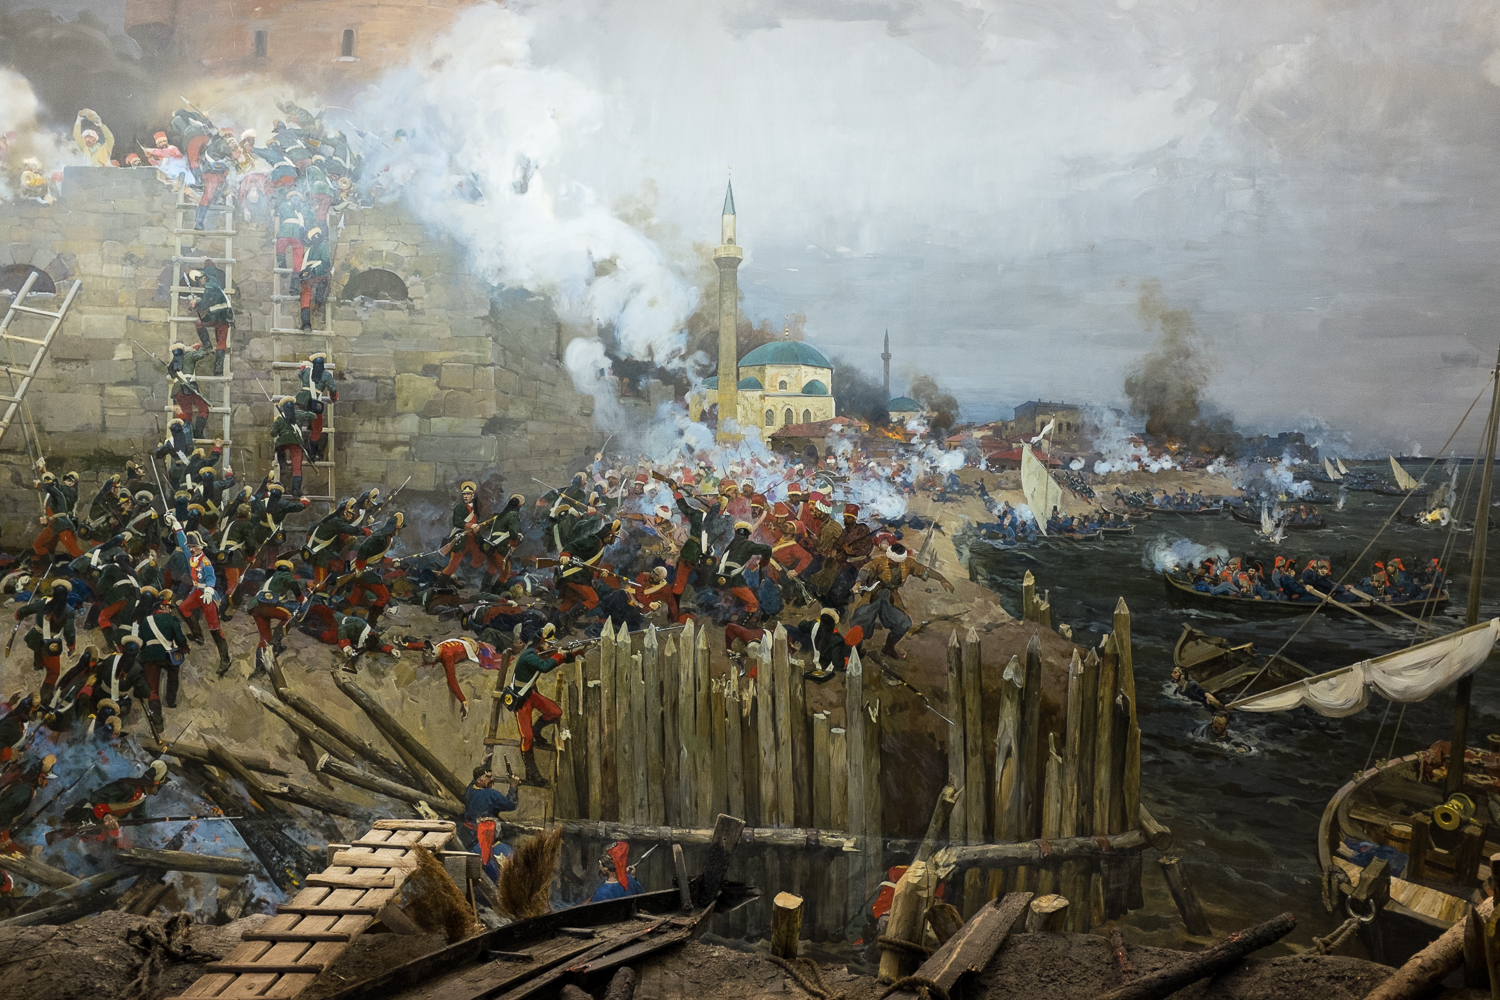 Izmail. Detail of a panorama in a museumdepicting the Russian assaulton the town, led by Prince Grigori Potemkin and General Aleksander Suvorov,during the Russo-Turkish war in 1788.